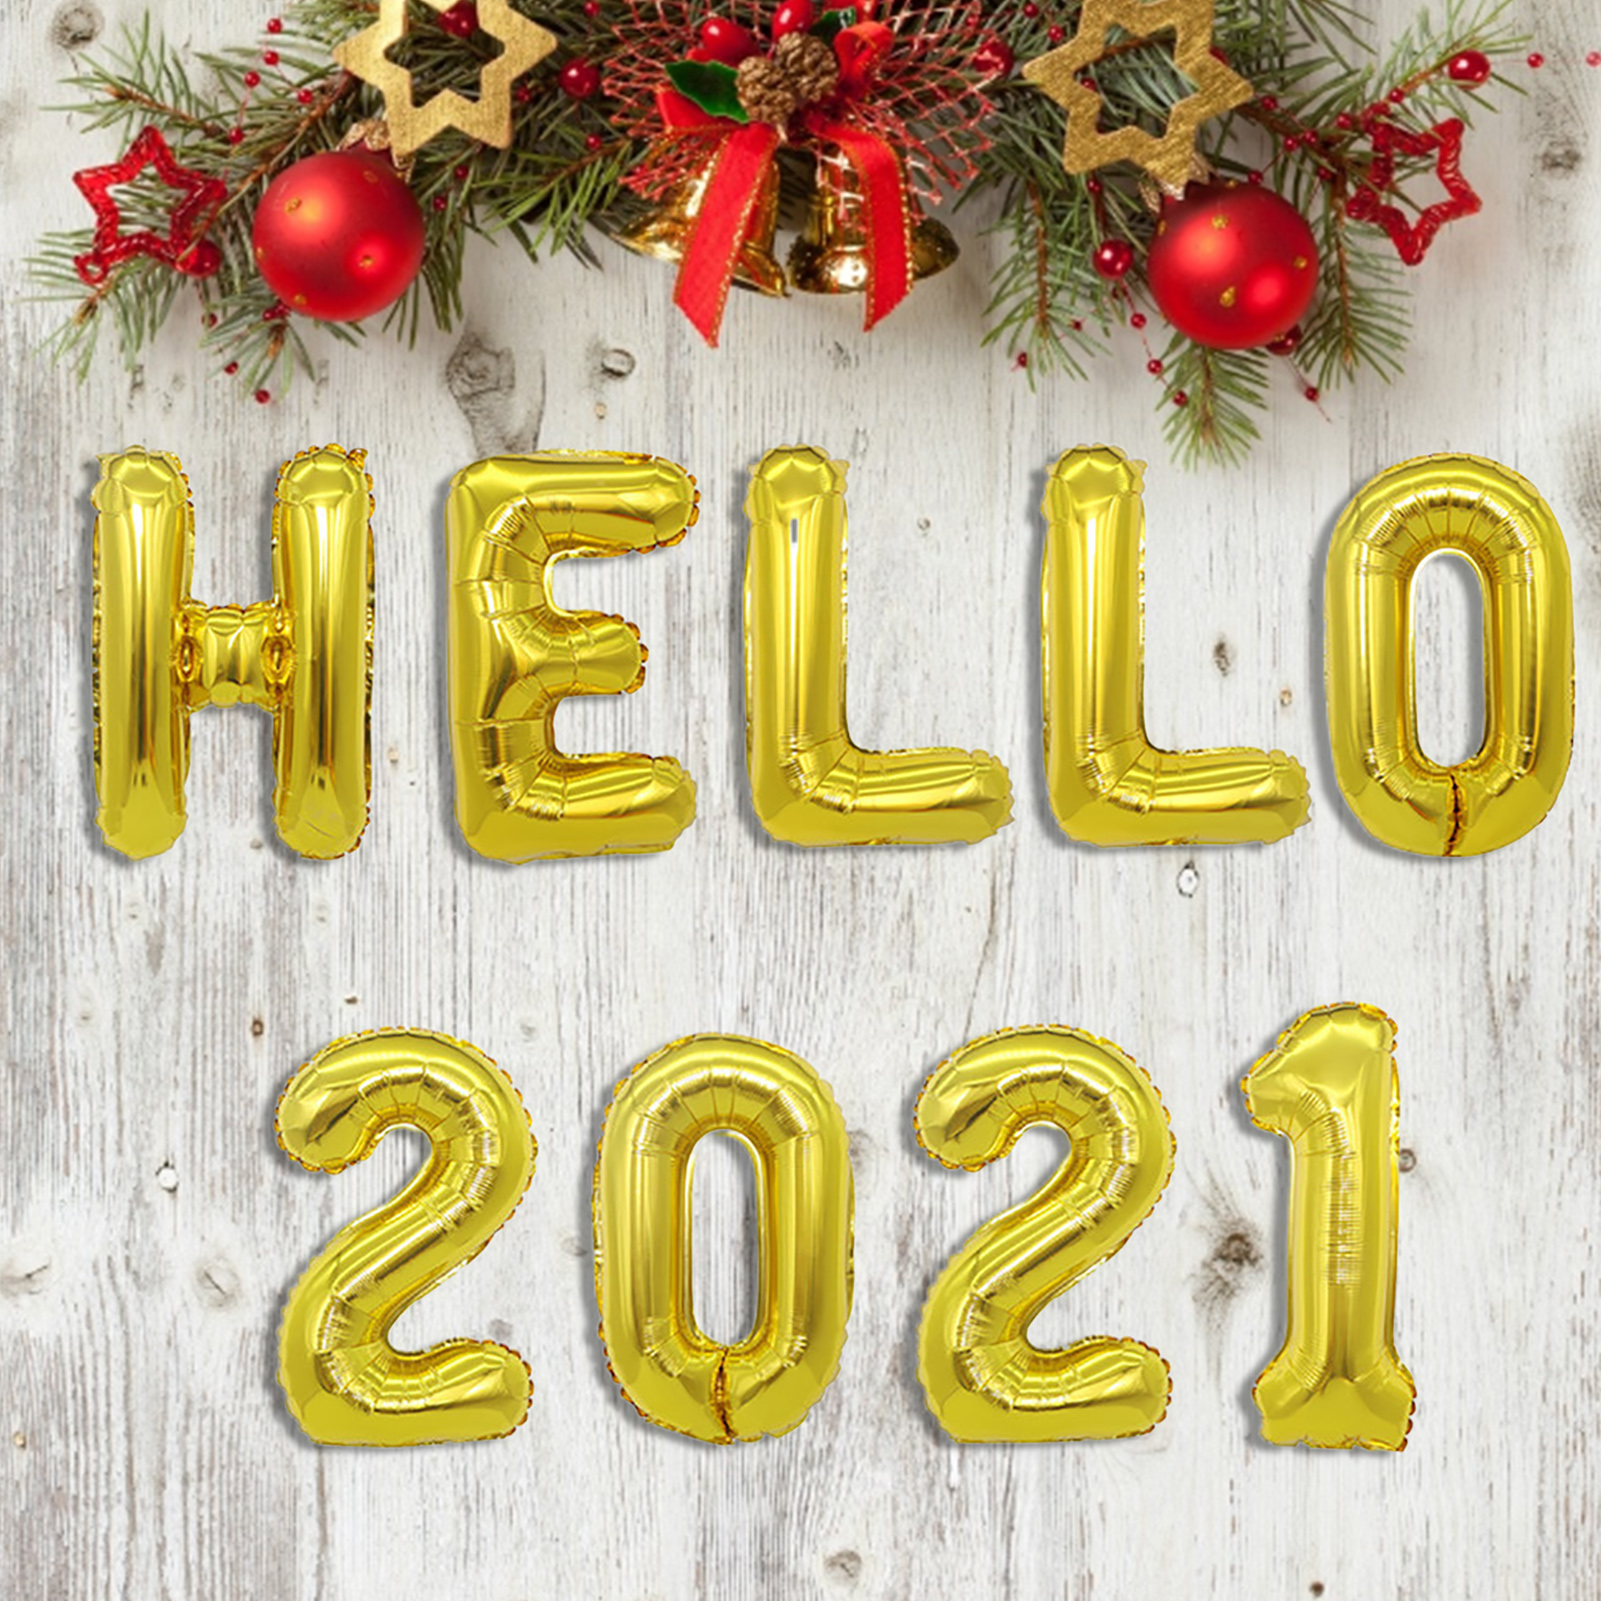 Antigua Christmas Eve Events 2021 Parties Balloons Set Reusable Christmas Party Decoration For 2021 New Year Eve Buy New Year Balloons Decoration Christmas Party Balloons New Year Eve Decoration Product On Alibaba Com